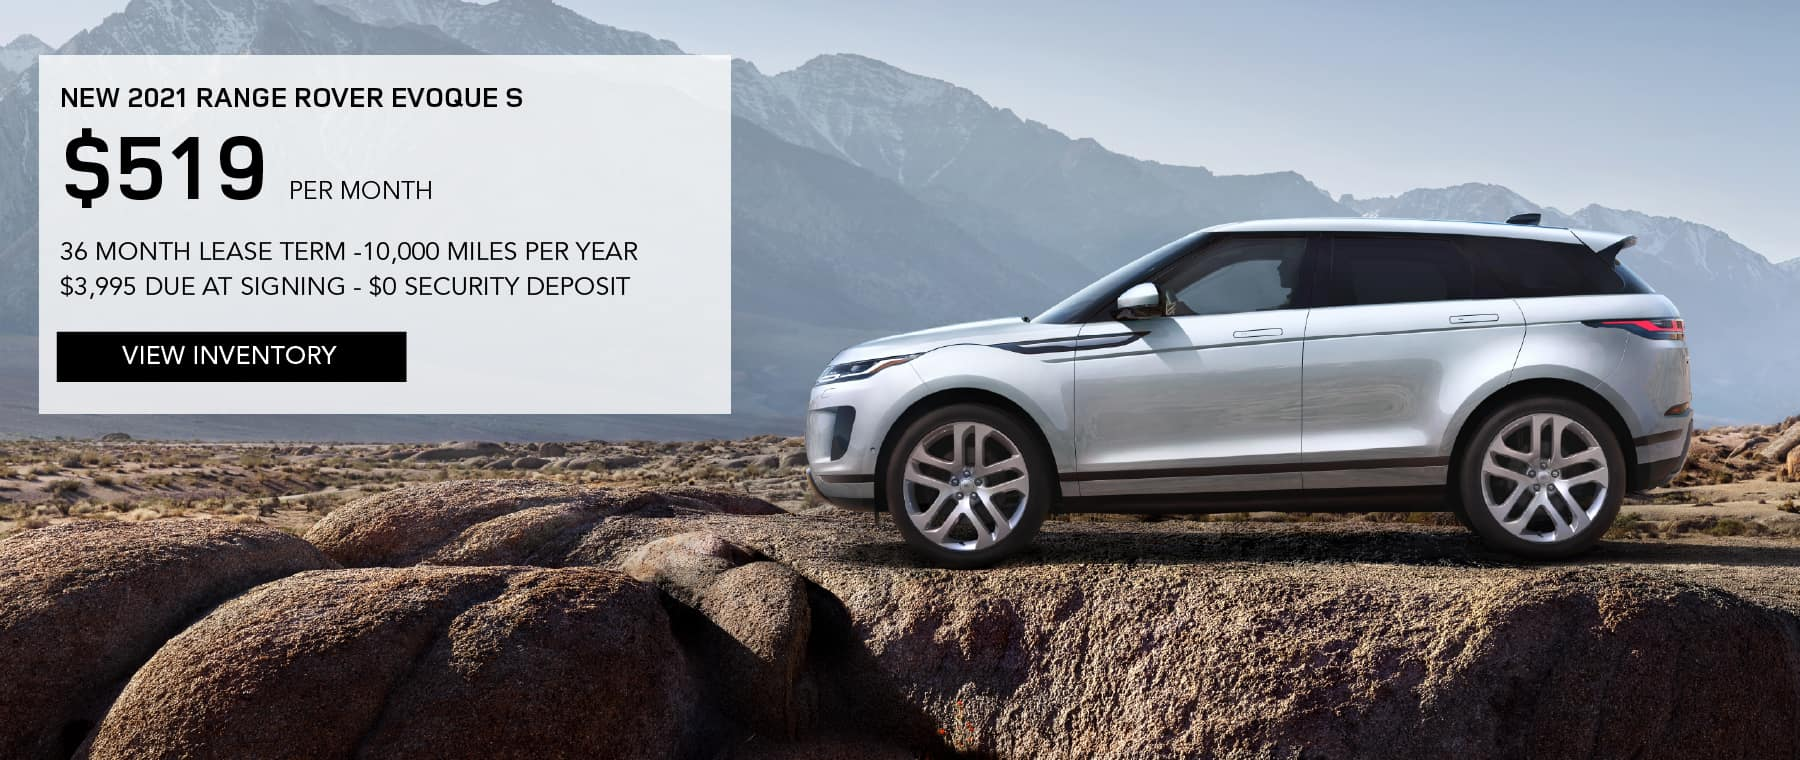 NEW 2021 RANGE ROVER EVOQUE S. $519 PER MONTH. 36 MONTH LEASE TERM. $3,995 CASH DUE AT SIGNING. $0 SECURITY DEPOSIT. 10,000 MILES PER YEAR. EXCLUDES RETAILER FEES, TAXES, TITLE AND REGISTRATION FEES, PROCESSING FEE AND ANY EMISSION TESTING CHARGE. OFFER ENDS 8/2/2021. VIEW INVENTORY SILVER RANGE ROVER EVOQUE PARKED IN MOUNTAINS.